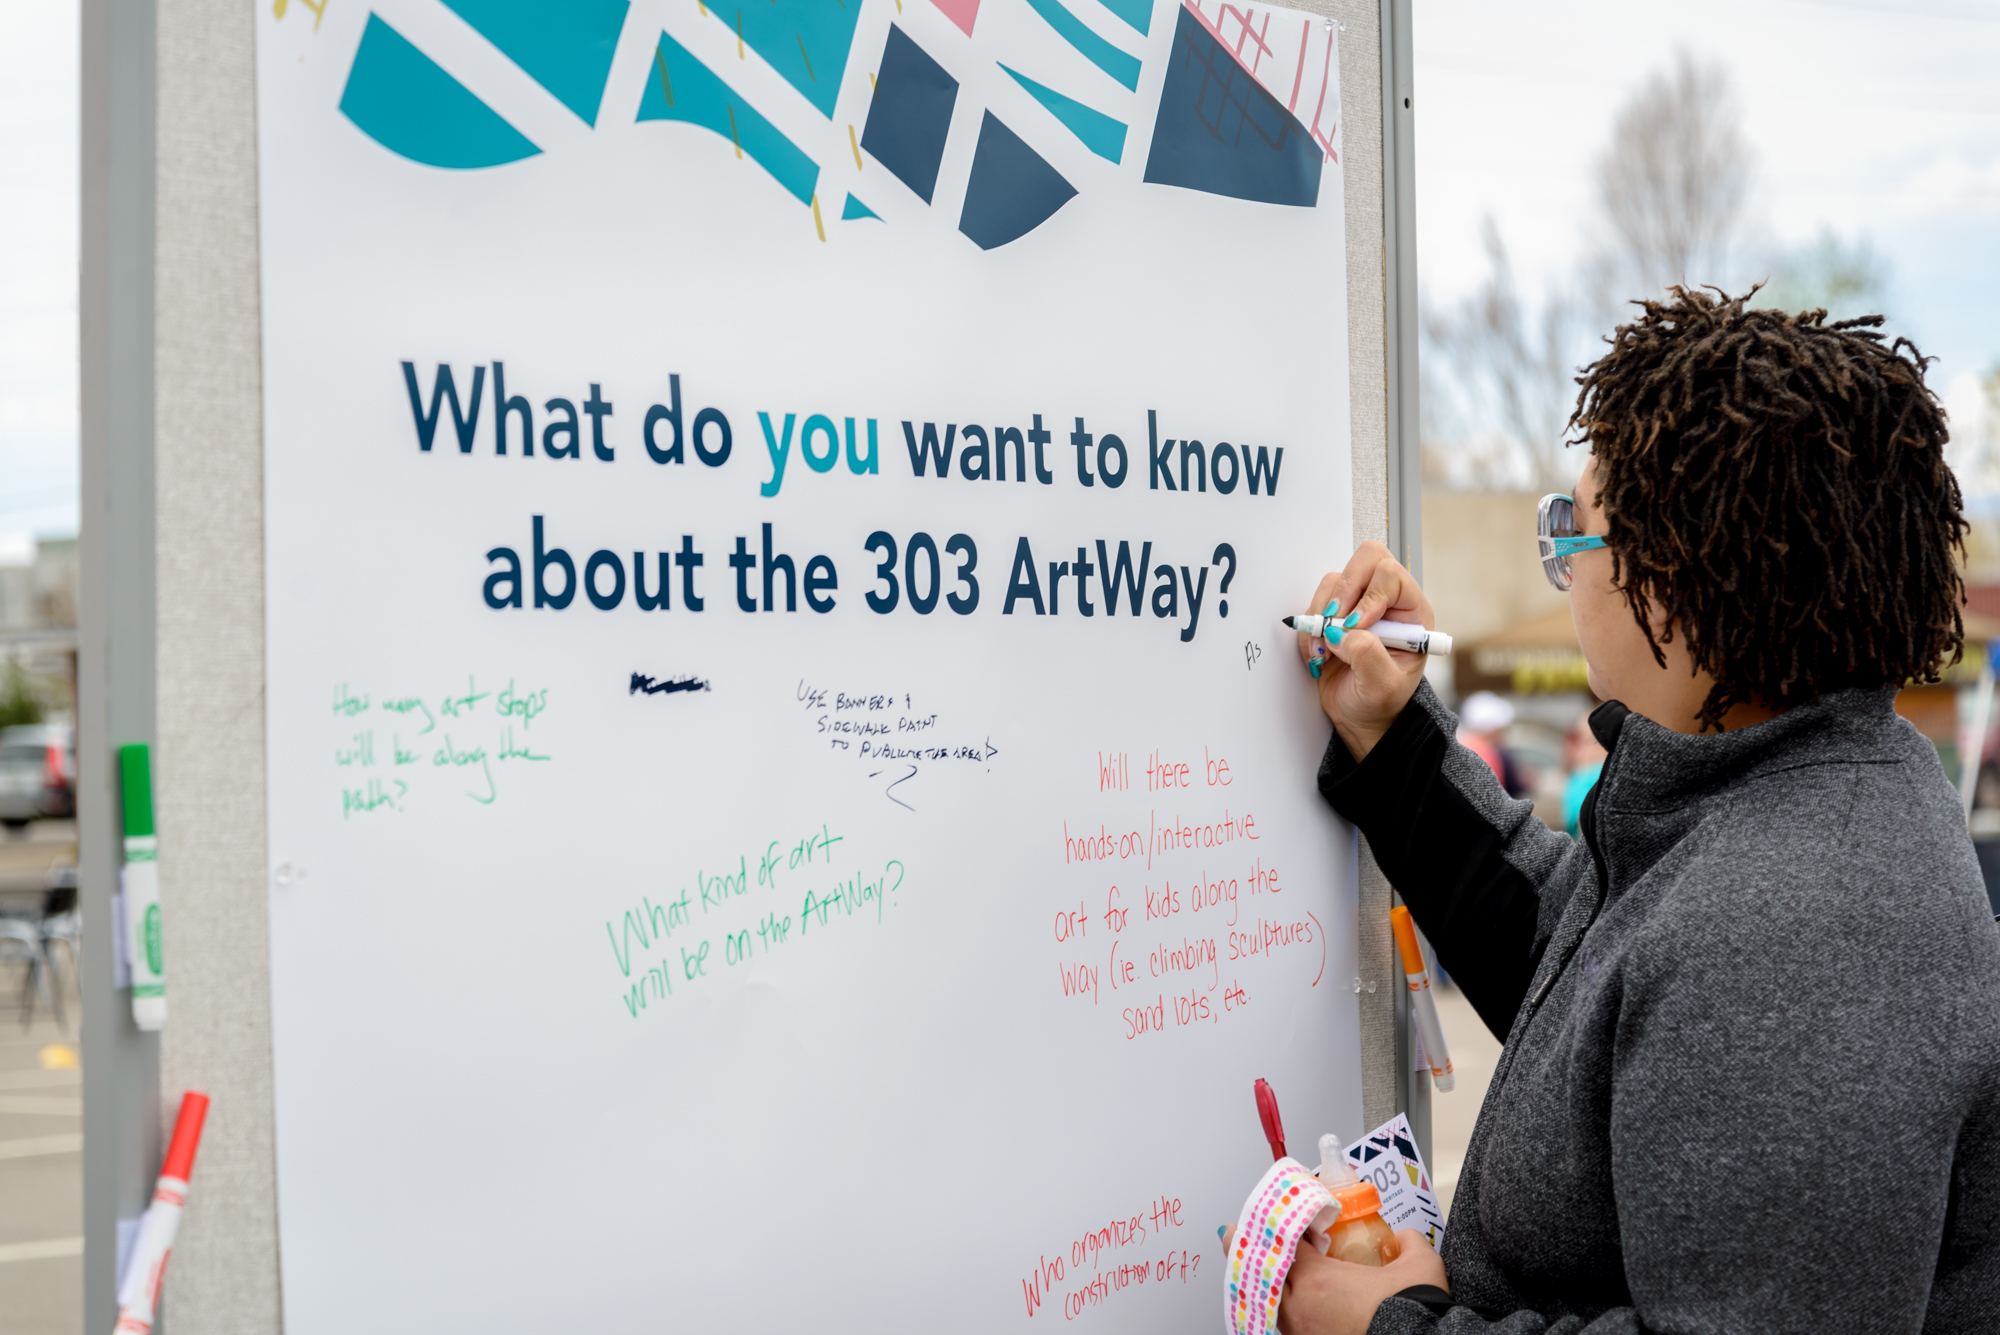 303 ArtWay A-Line Open Day Community Input Image 1.jpg